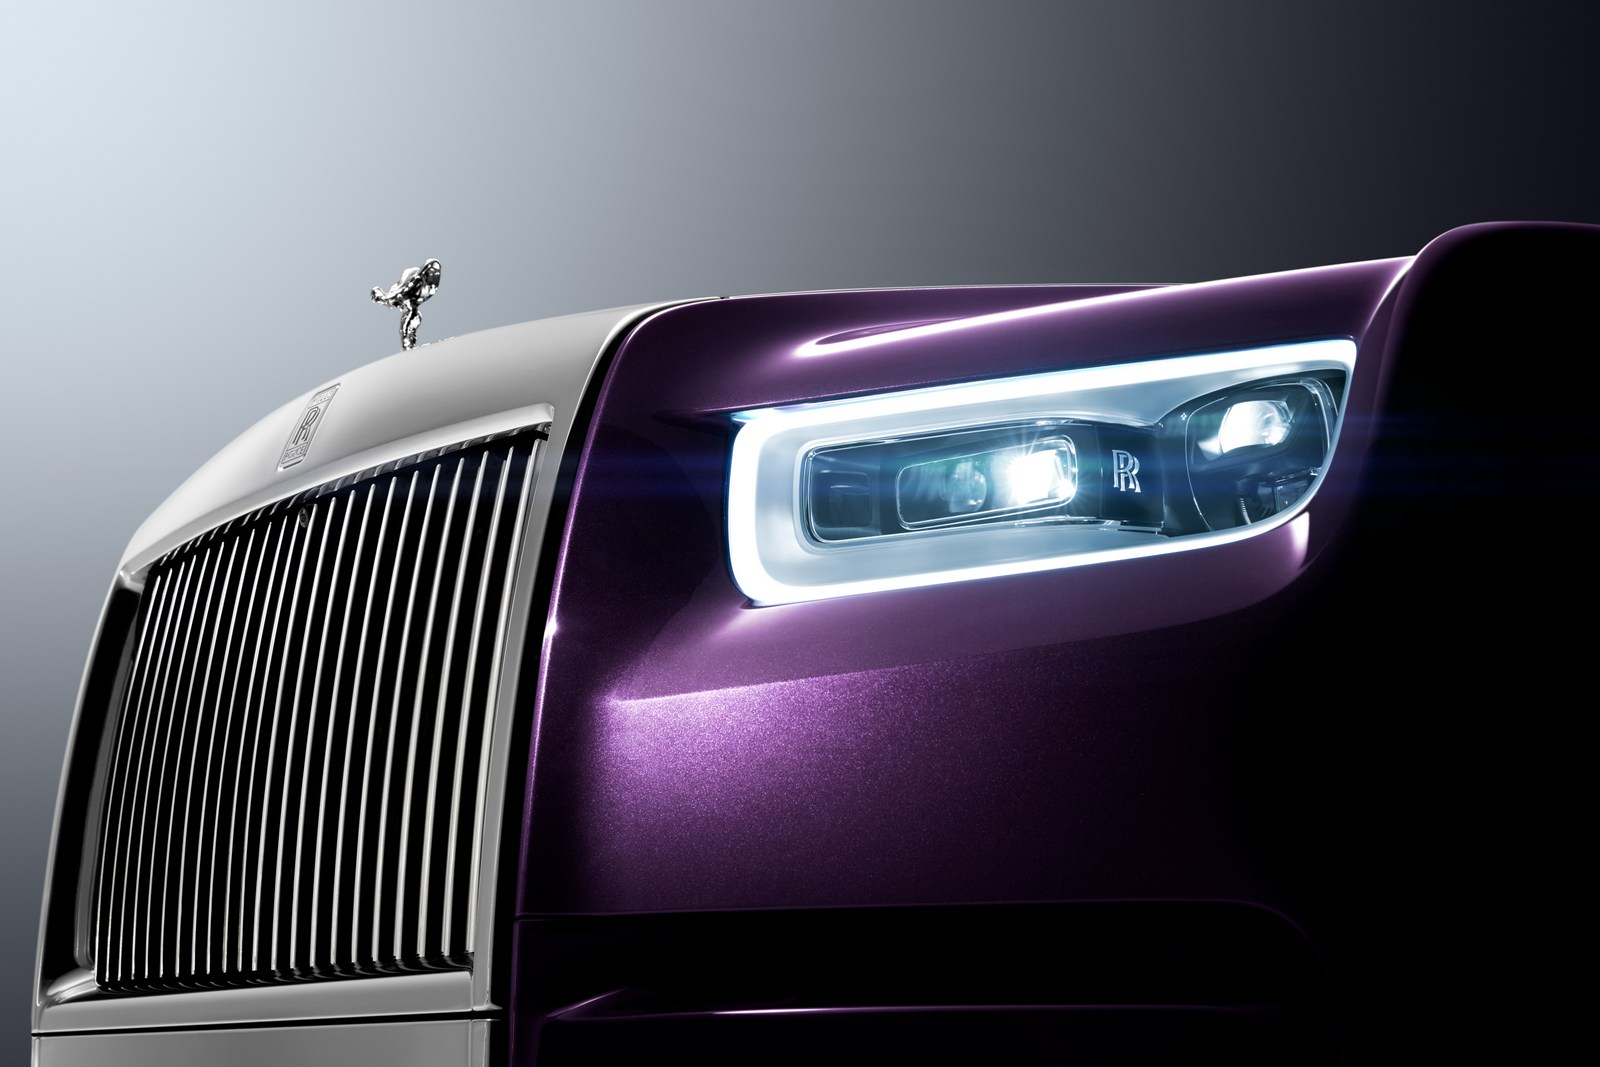 2018_Rolls-Royce_Phantom_11